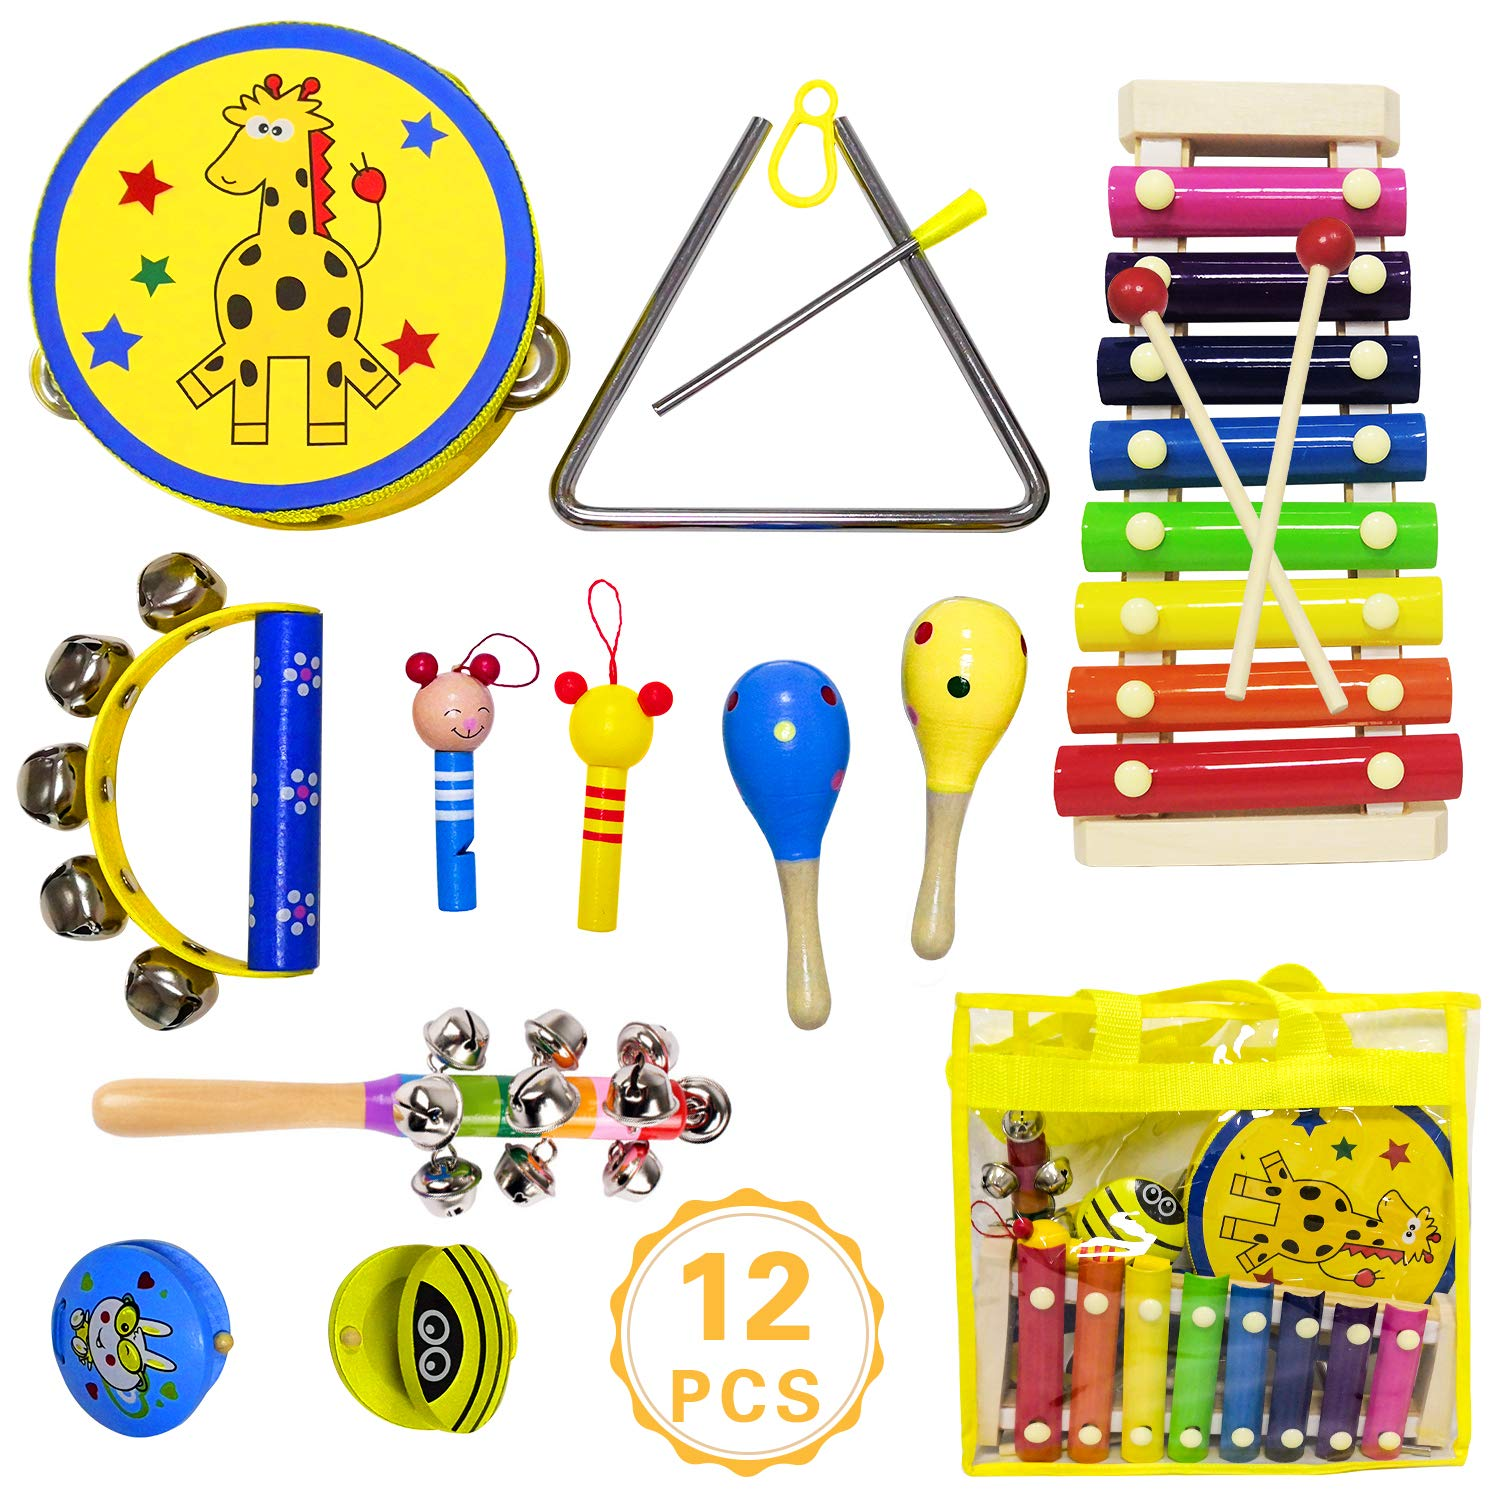 ToyerBee Musical Instruments Toys Set for Kids, 15PCS Wooden Percussion Instruments for Toddlers, Preschool& Educational Toy with StorageBag, Tambourine, Maracas, Castanets& More for Boys and Girls. by ToyerBee